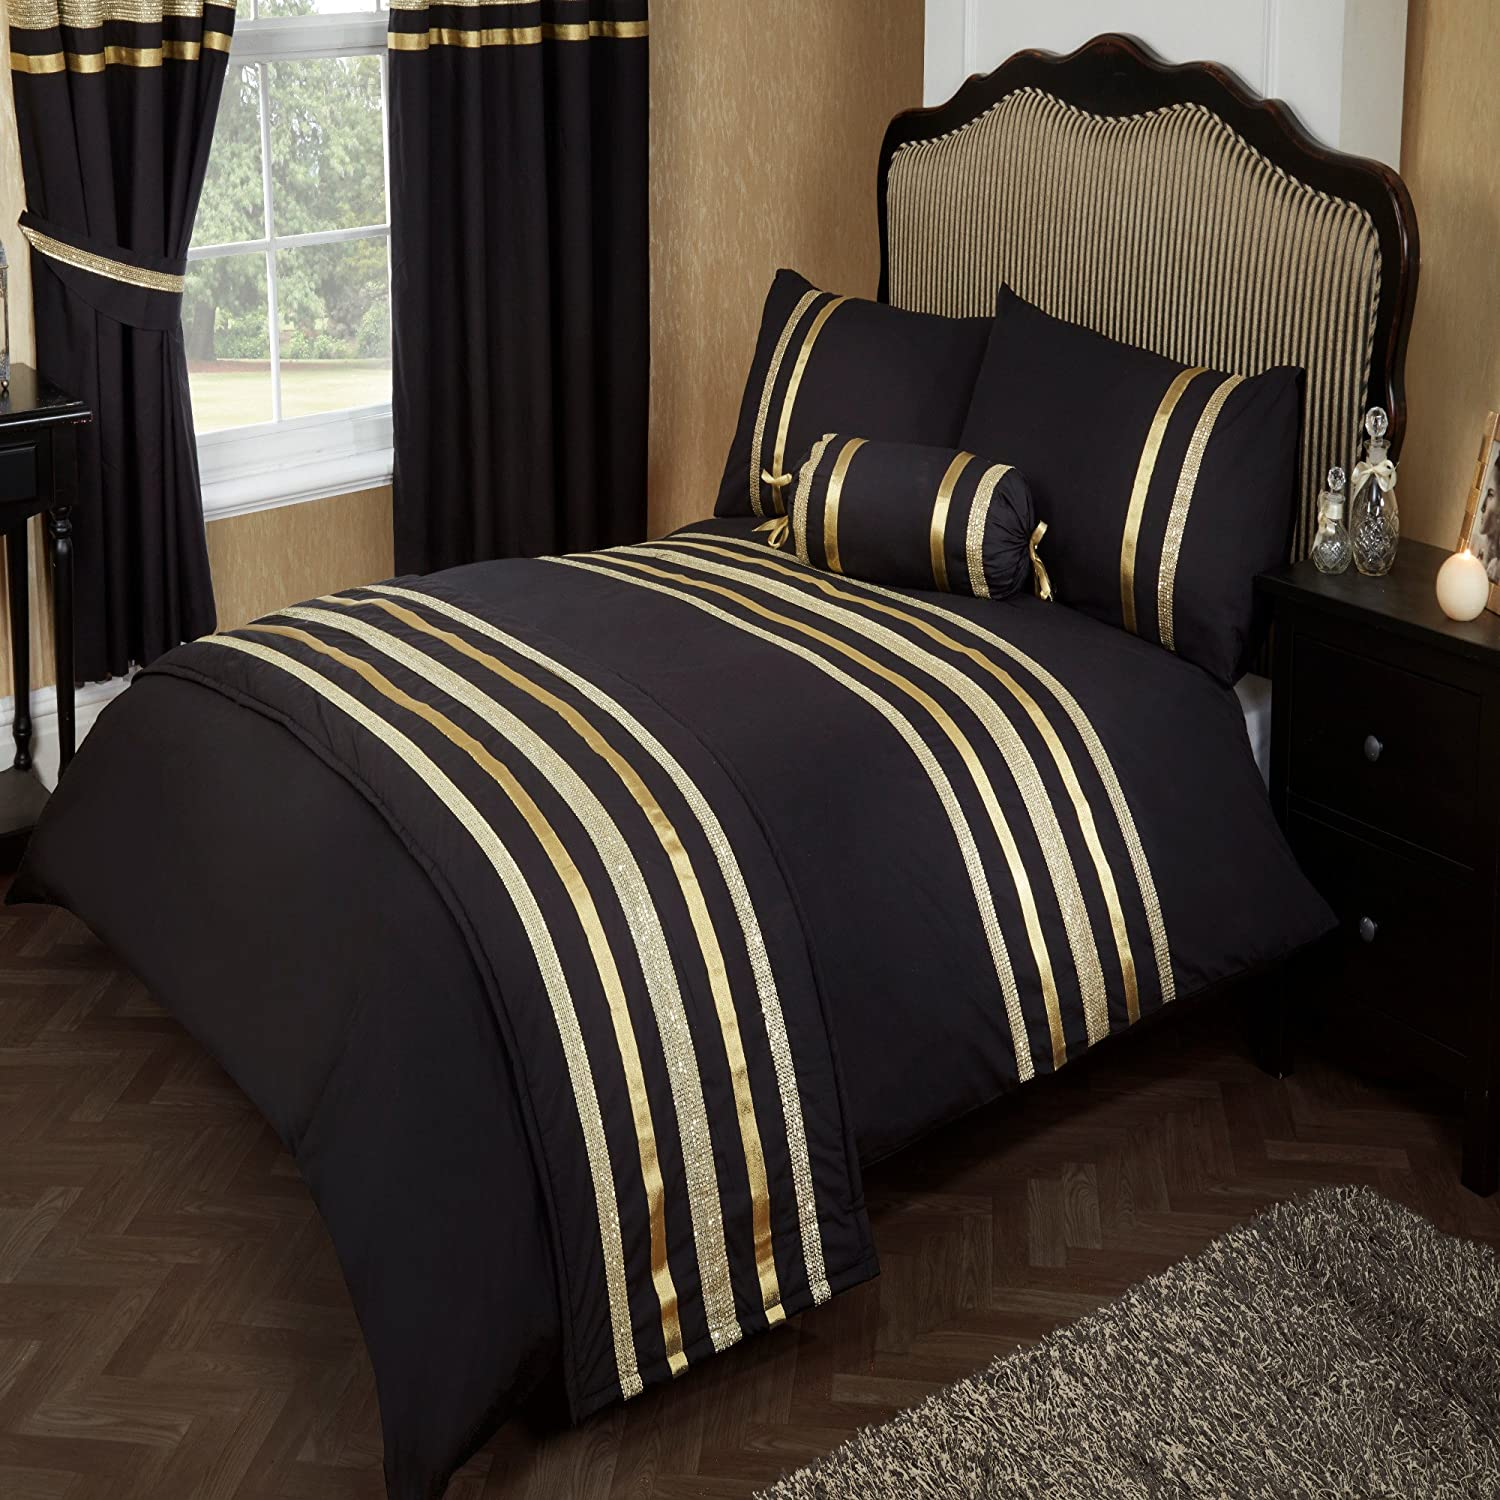 King Size Bed Glitz Black With Gold Trim Duvet Quilt Cover